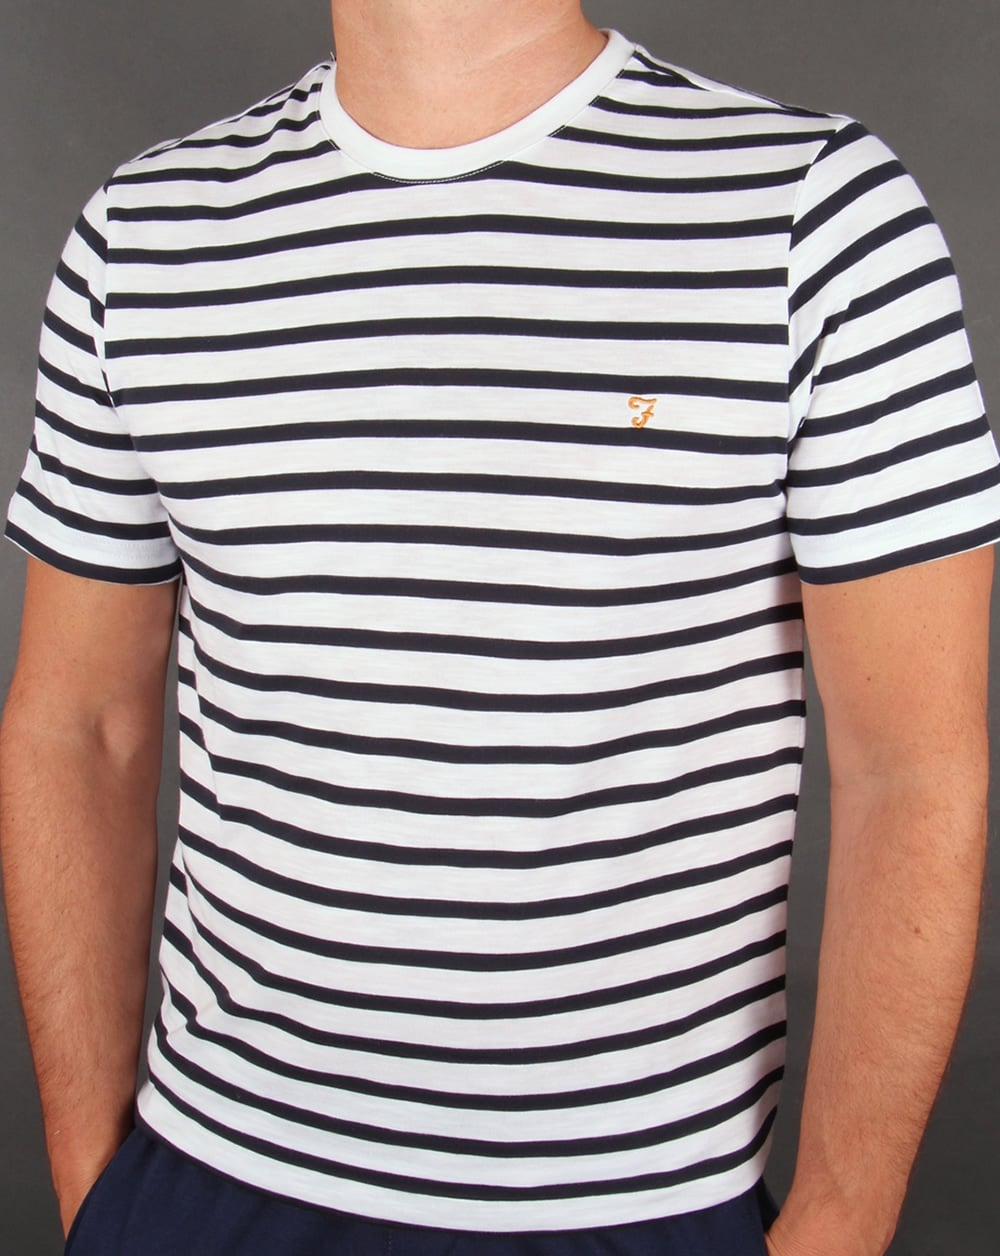 Renowned for their trademark stripes and attention paid to every detail, Saint James has been outfitting professional sailors and fashion conscious consumers for over a decade. Cut from airy cotton, the Minquidame luxurious white and navy striped shirt is a wardrobe staple.